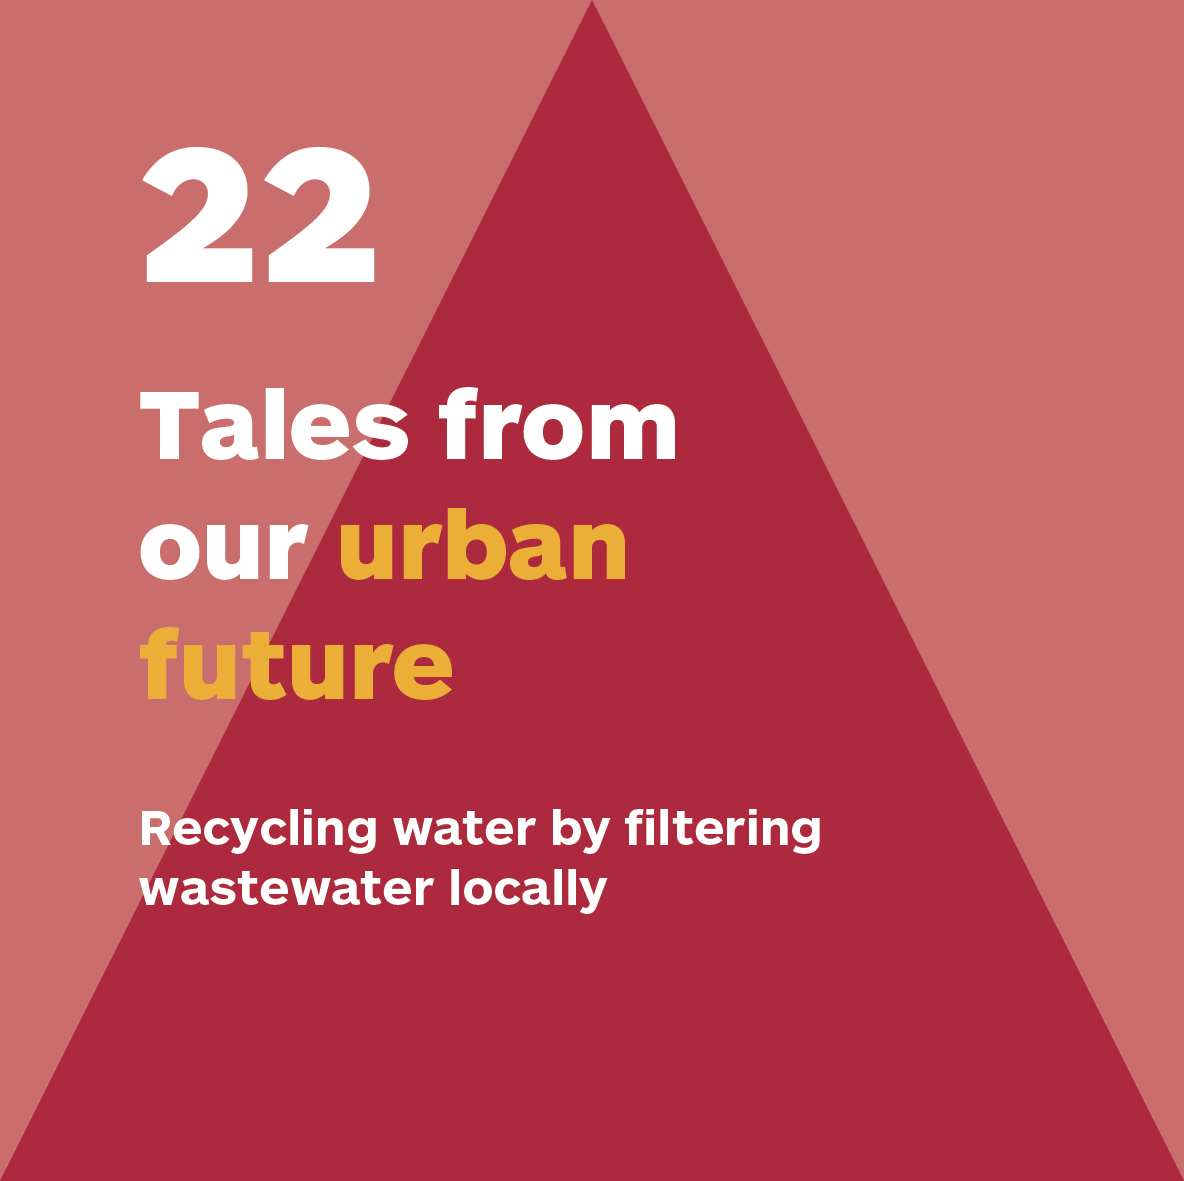 Celebrating collaboration – Dec 22: #Recycling water by filtering wastewater locally  This collab between @3XN_GXN and #startup Nordphos filters wastewater to make it possible to recirculate the water several times  Click on photos to see the full story.  #OurUrbanFuture